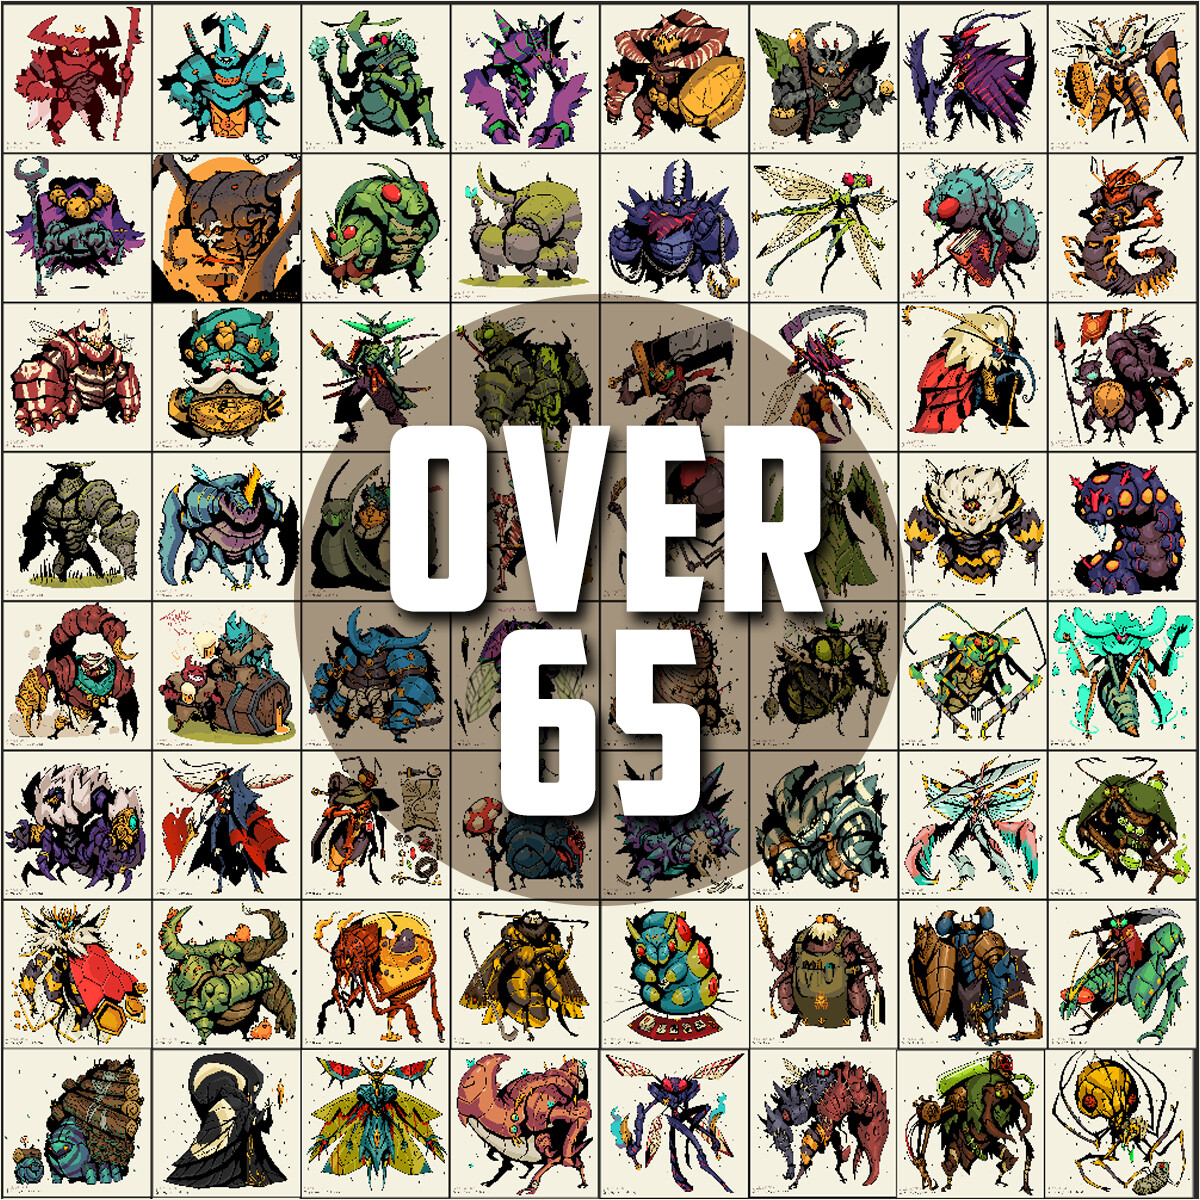 Over 65 different designs, with their own backstory - aiming for 100+